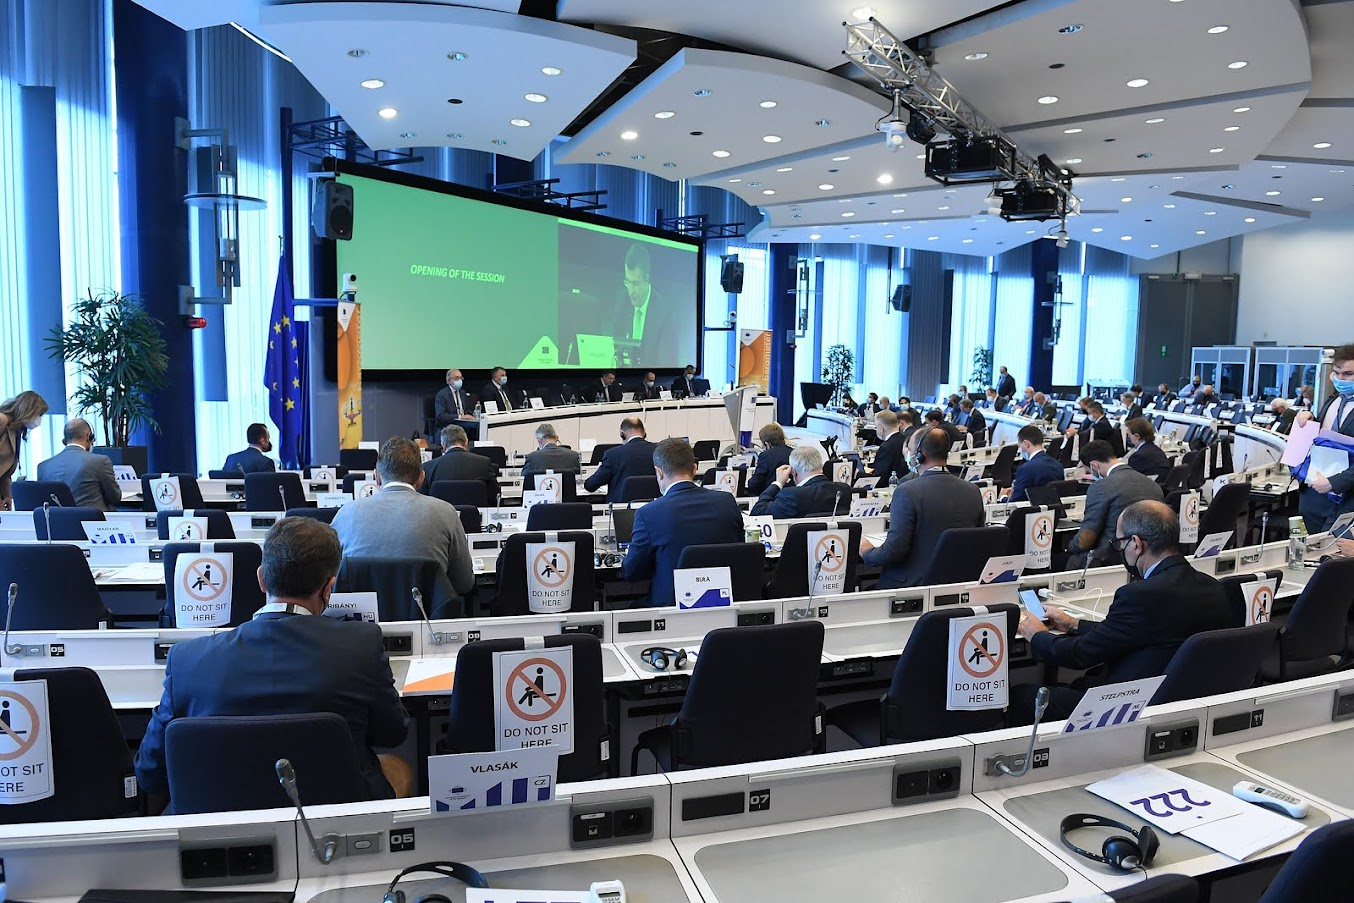 Politica Coesione - Photo credit: 146th Plenary Session of the European Committe of the Regions